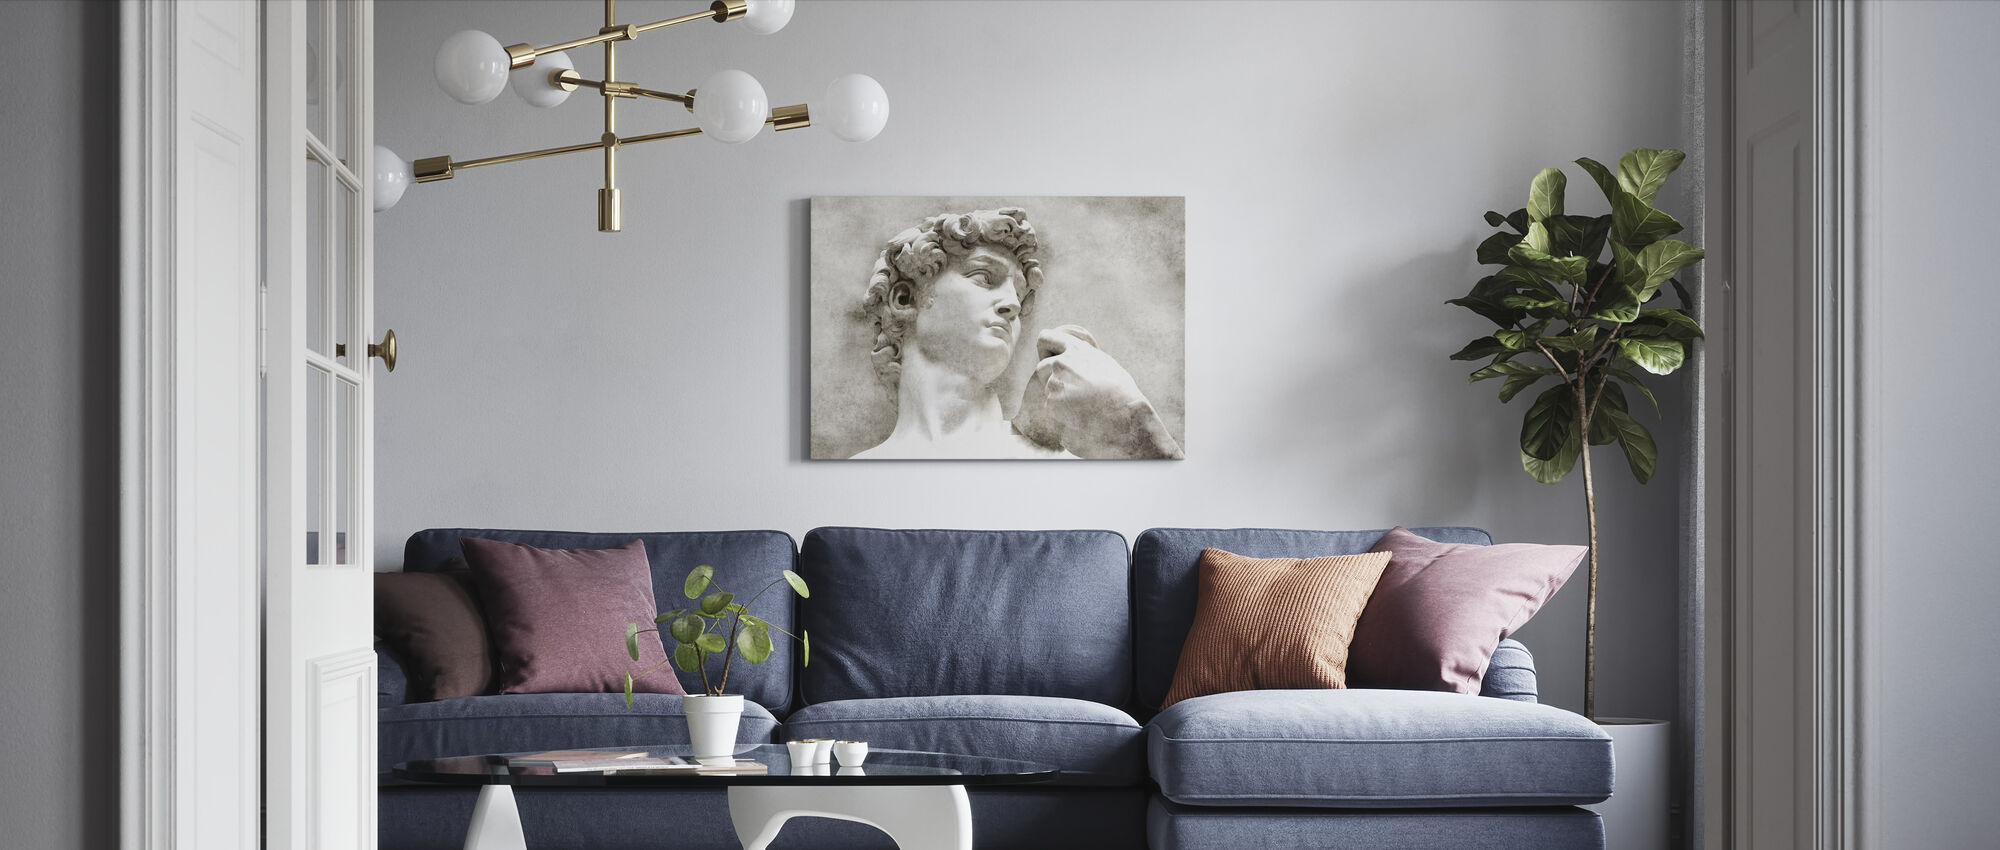 David Statue by Michelangelo - Canvas print - Living Room